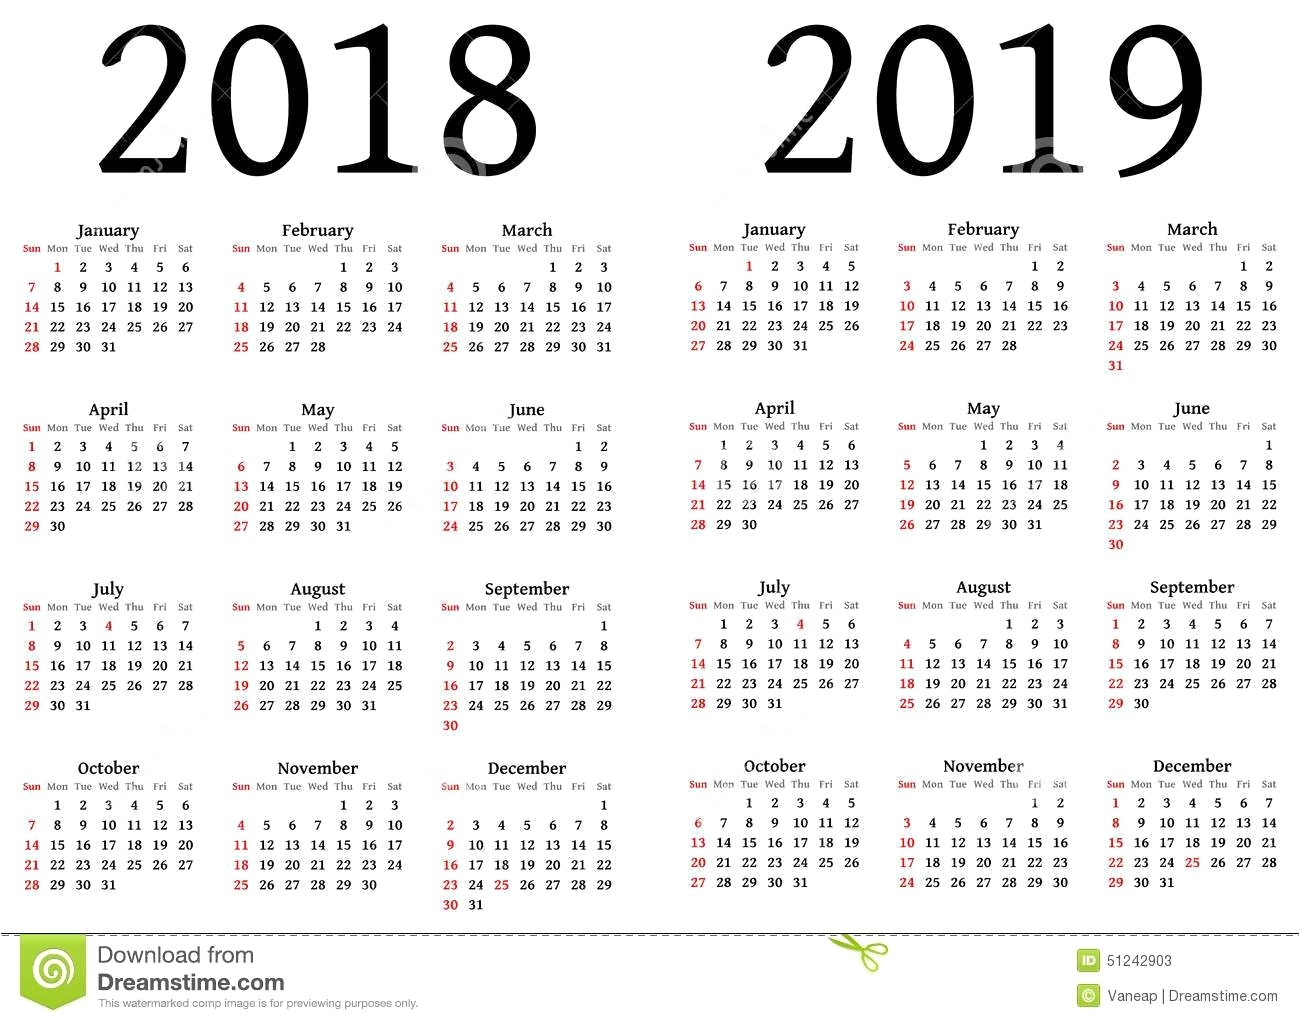 Opm Federal Pay Period Calendar 2019 | Payroll Calendars  Opm Pp Calendar Fy 2020